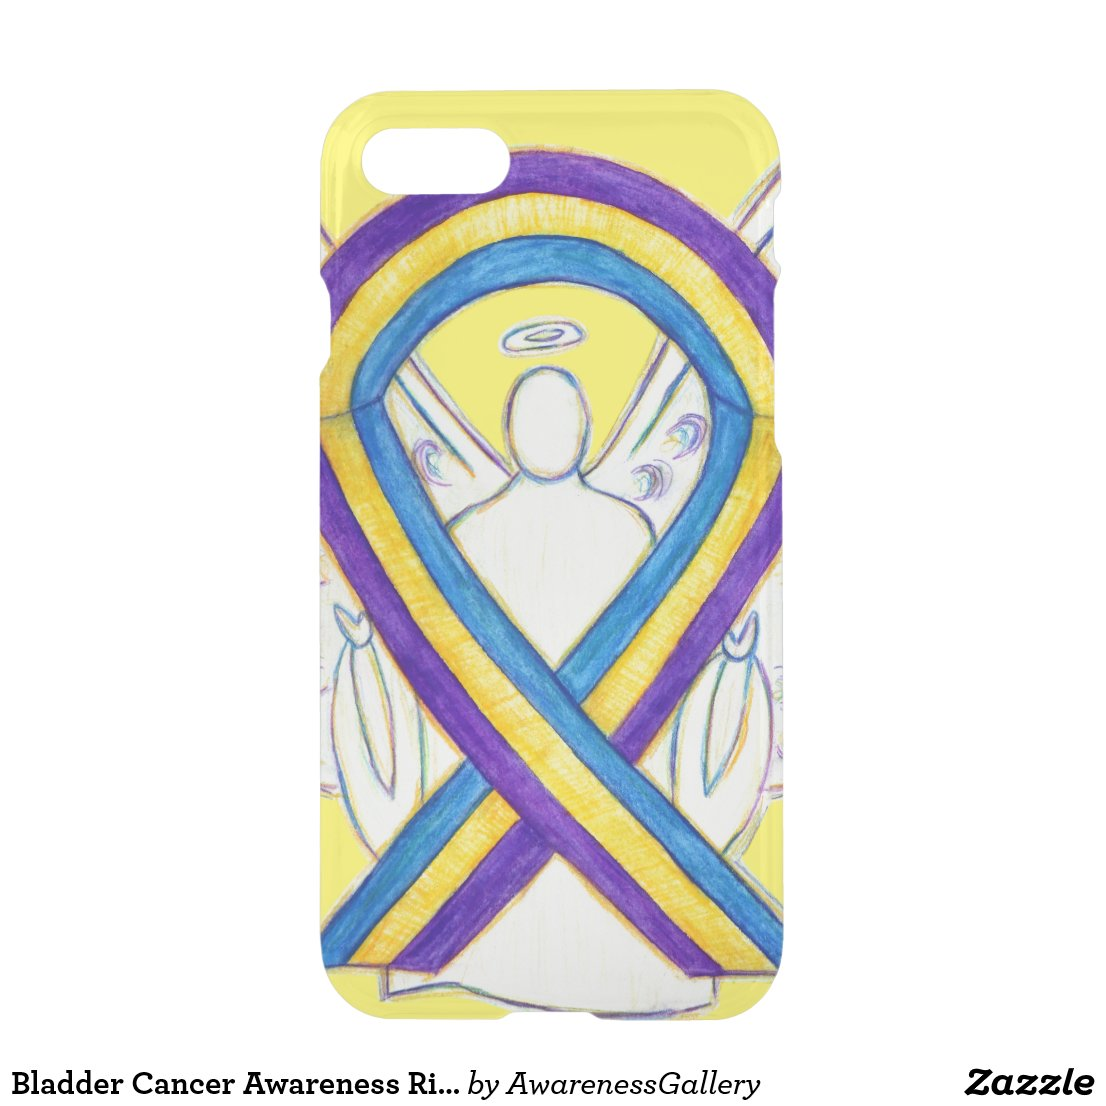 Bladder Cancer Awareness Ribbon iPhone Case